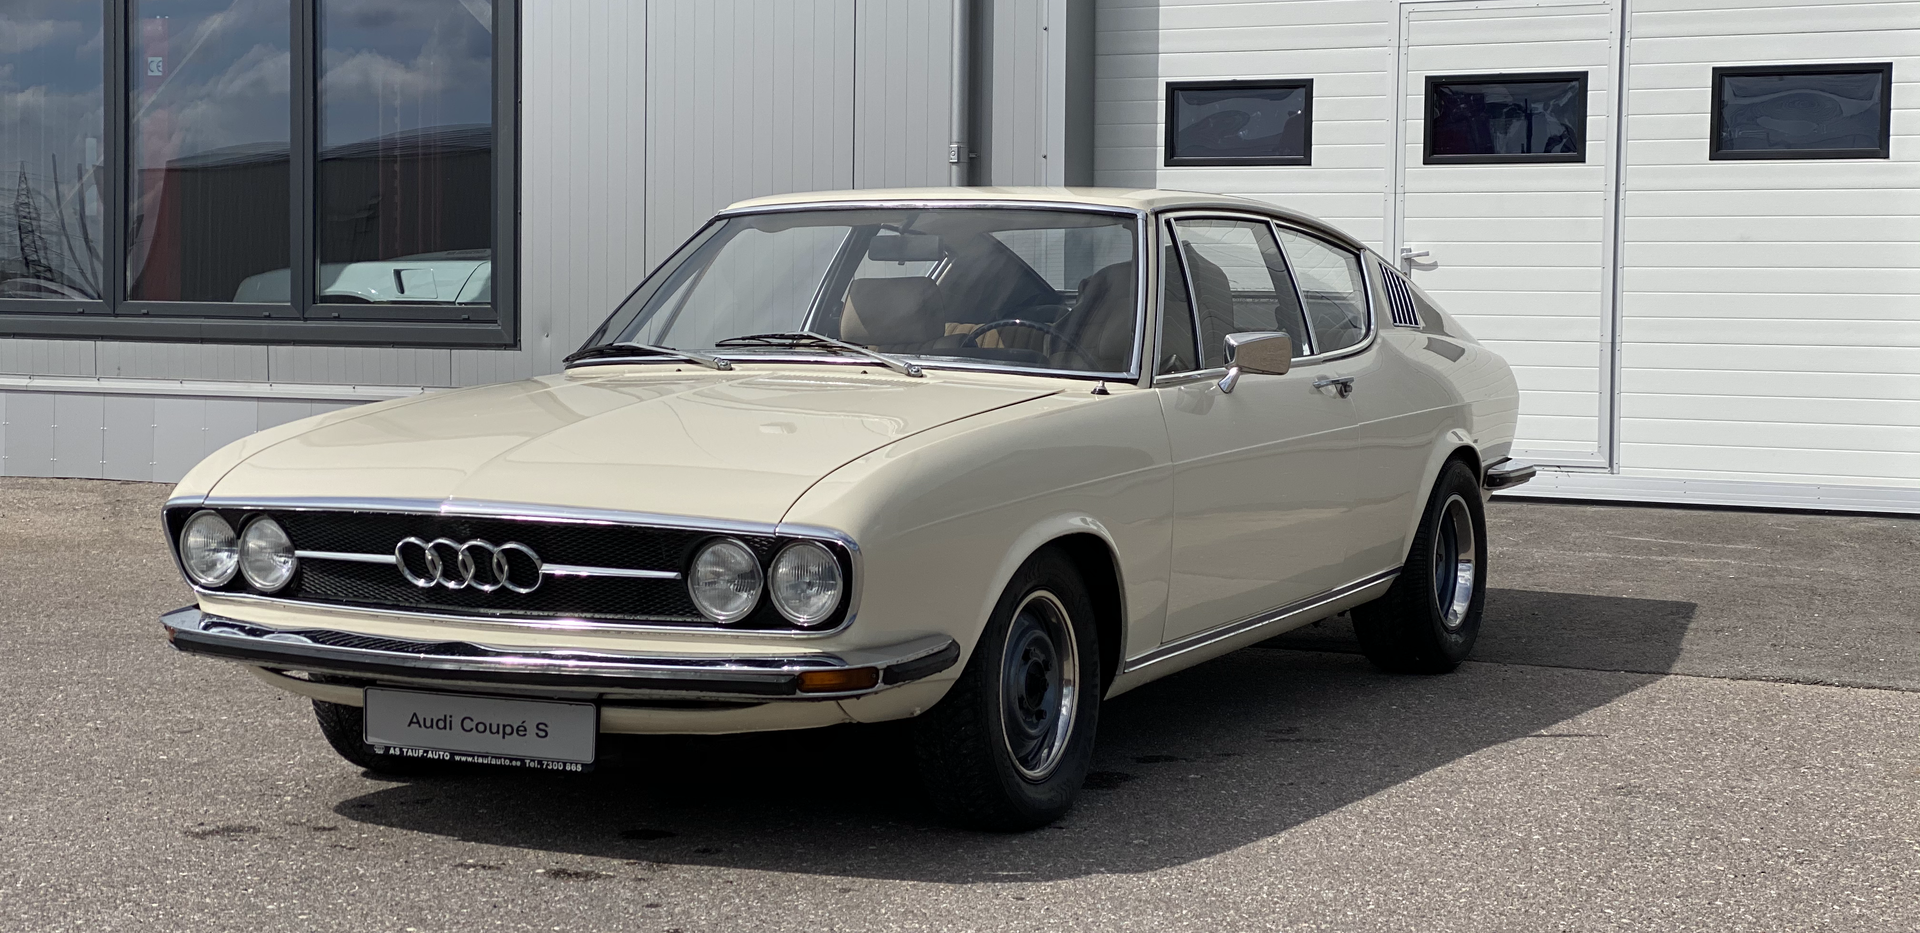 Audi Coupe S 1971